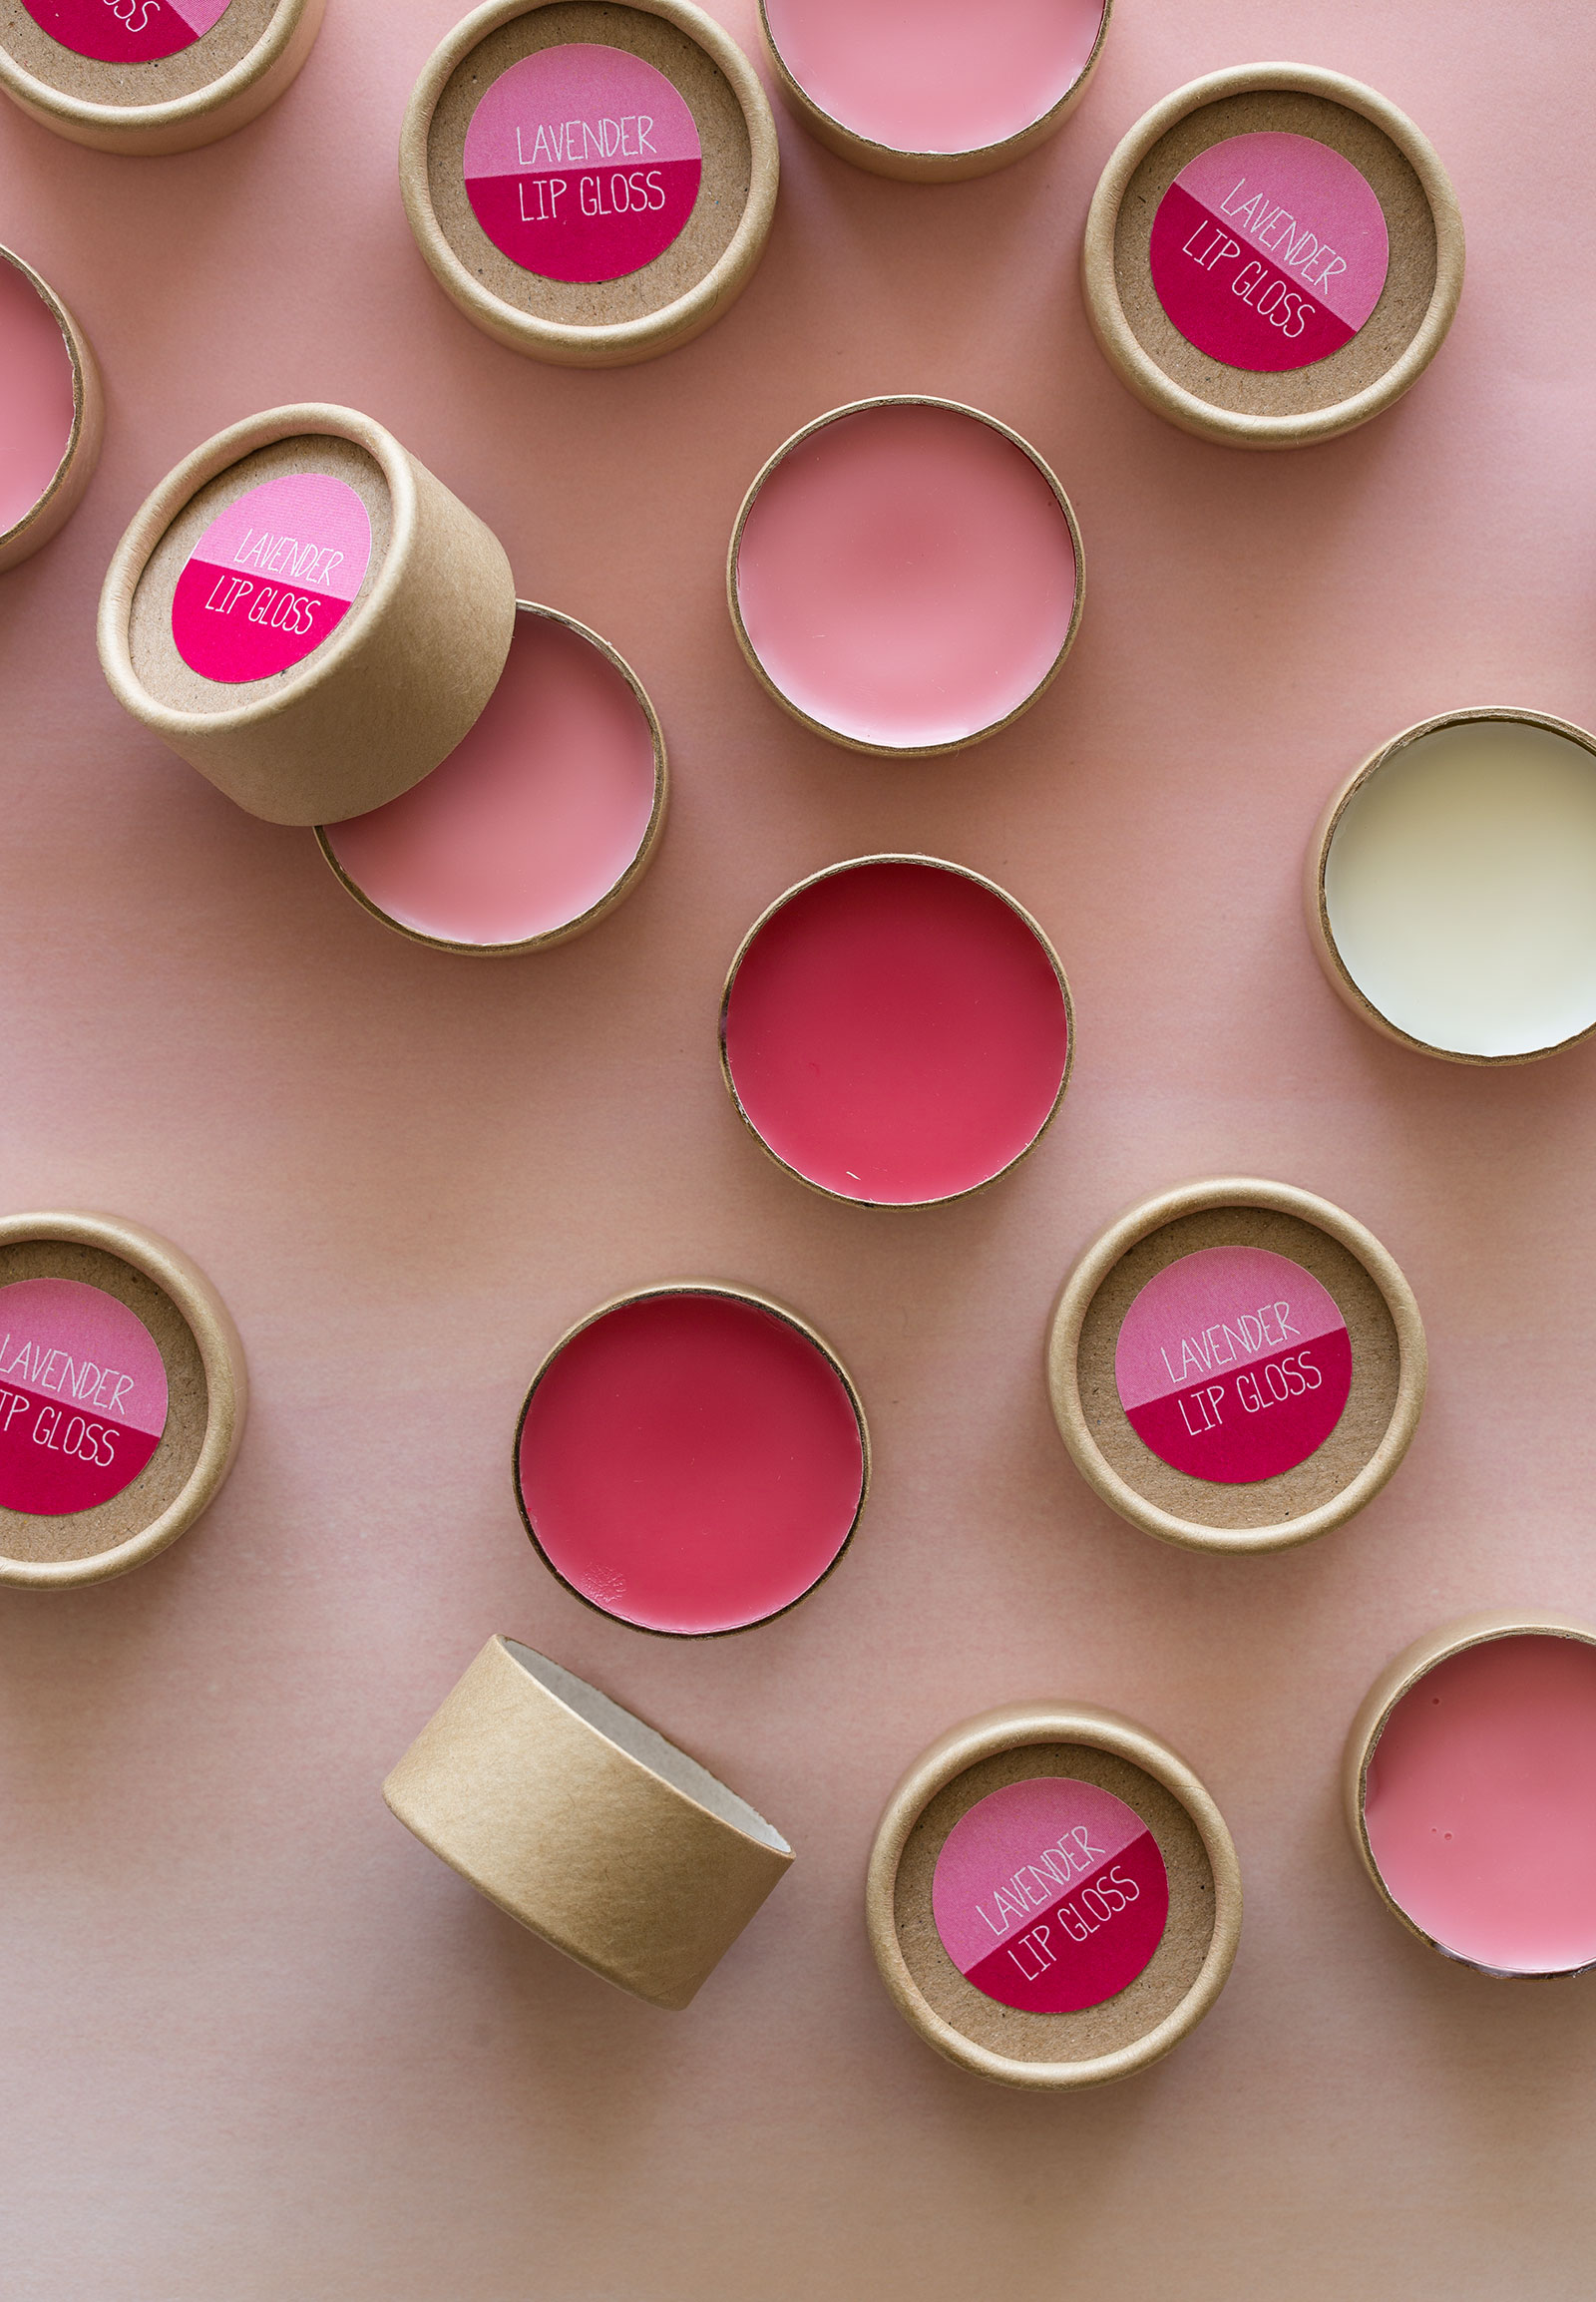 Diy Lip Balm Flavors These 25 Diy Lip Balms Will Keep Your Pucker Silky Smooth